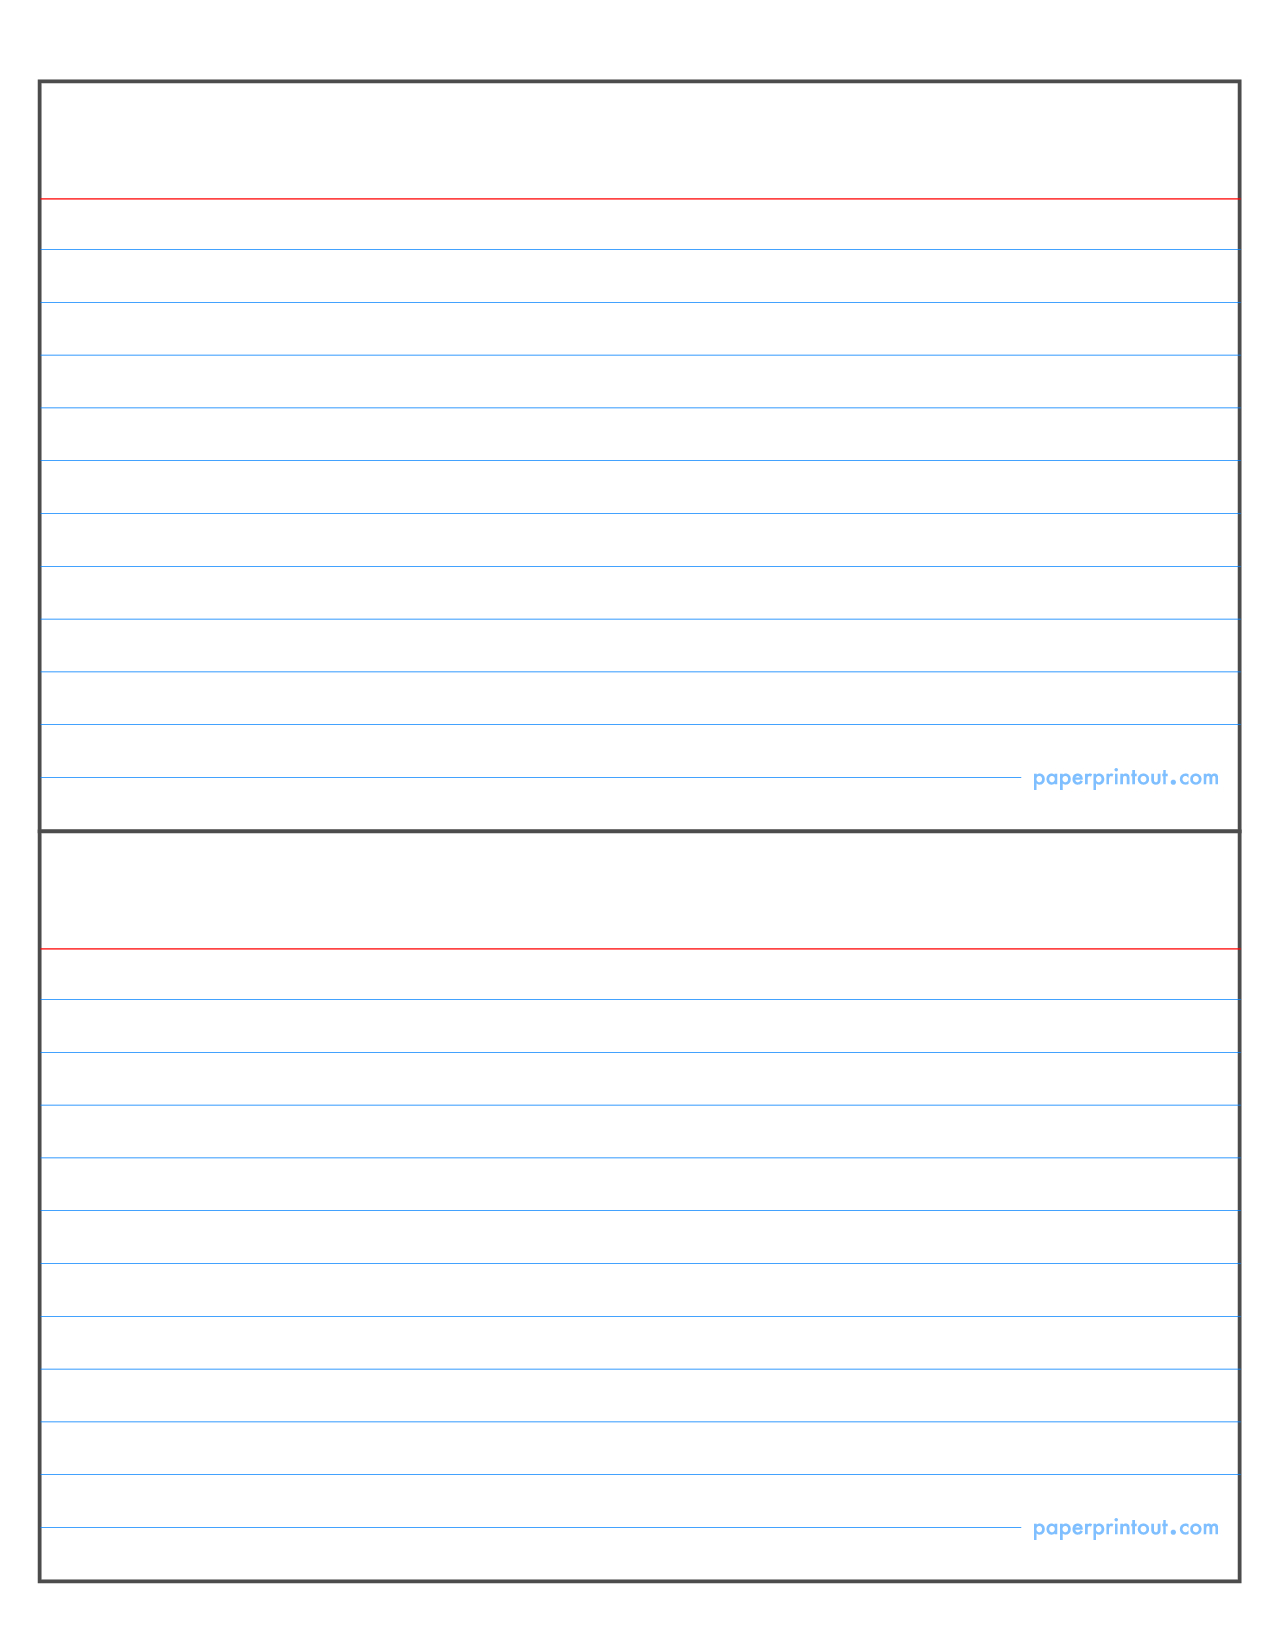 3X5 Card Template Microsoft Word - Colona.rsd7 For Open Office Index Card Template